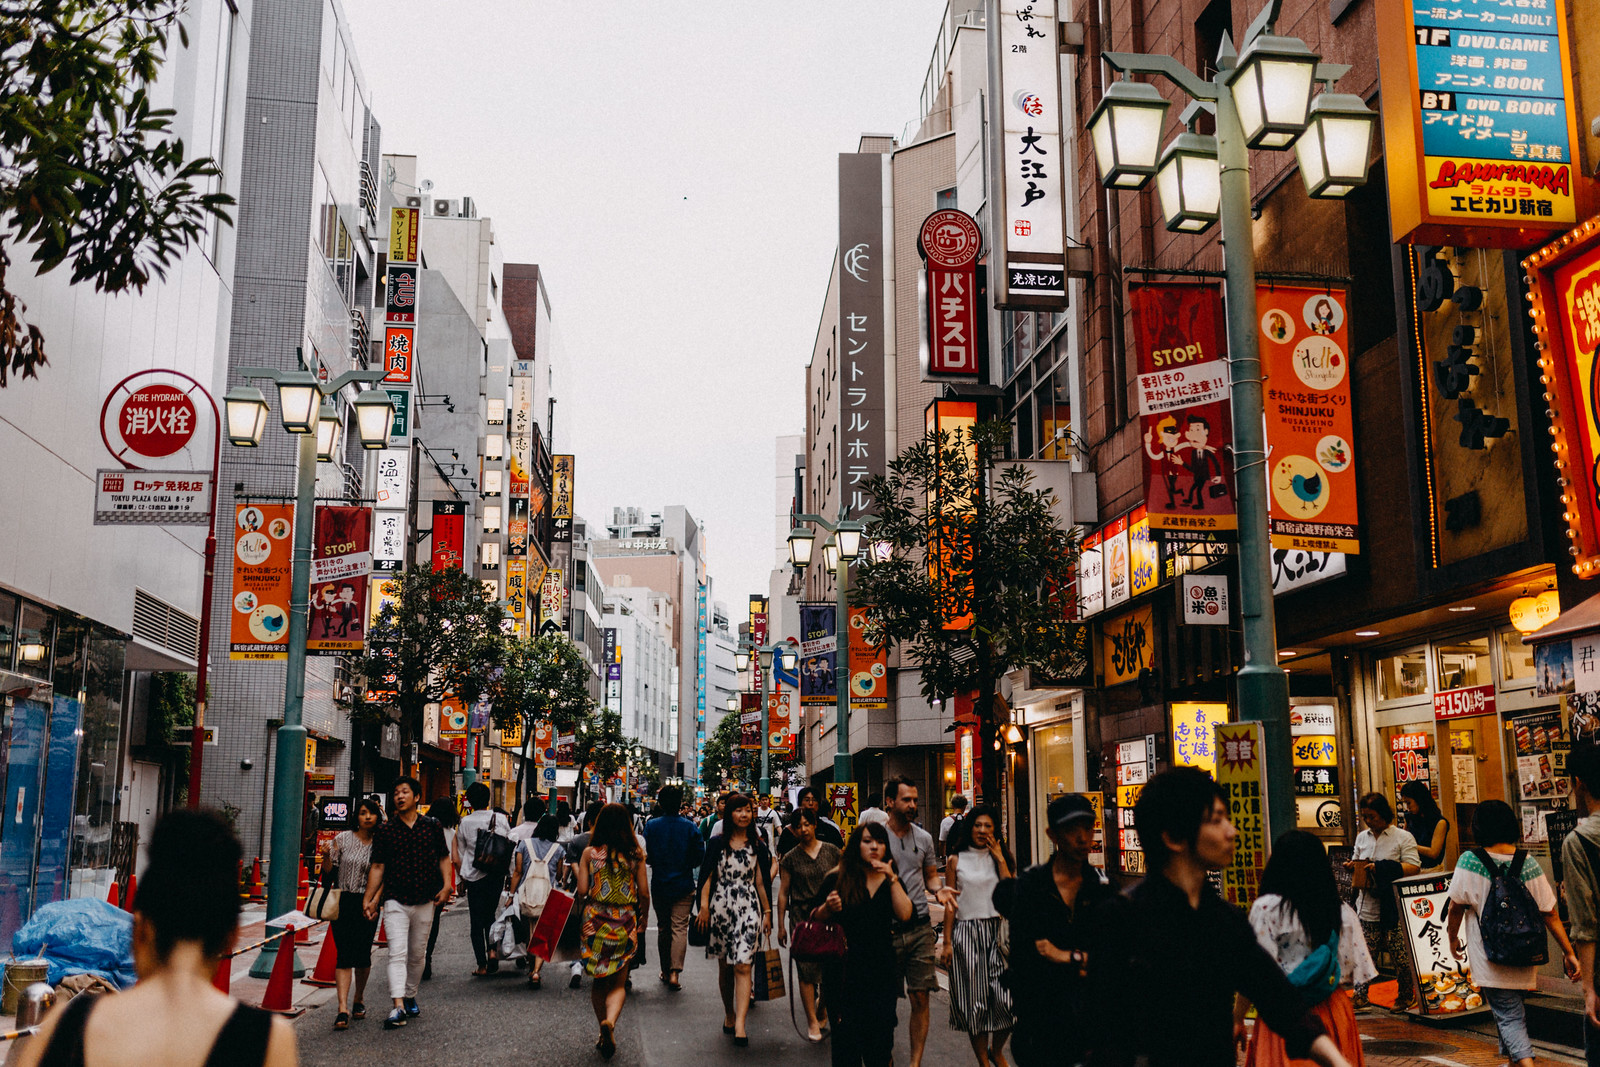 Lit up streets full of people at dusk in Shinjuku Tokyo Japan with restaurants bars and arcades